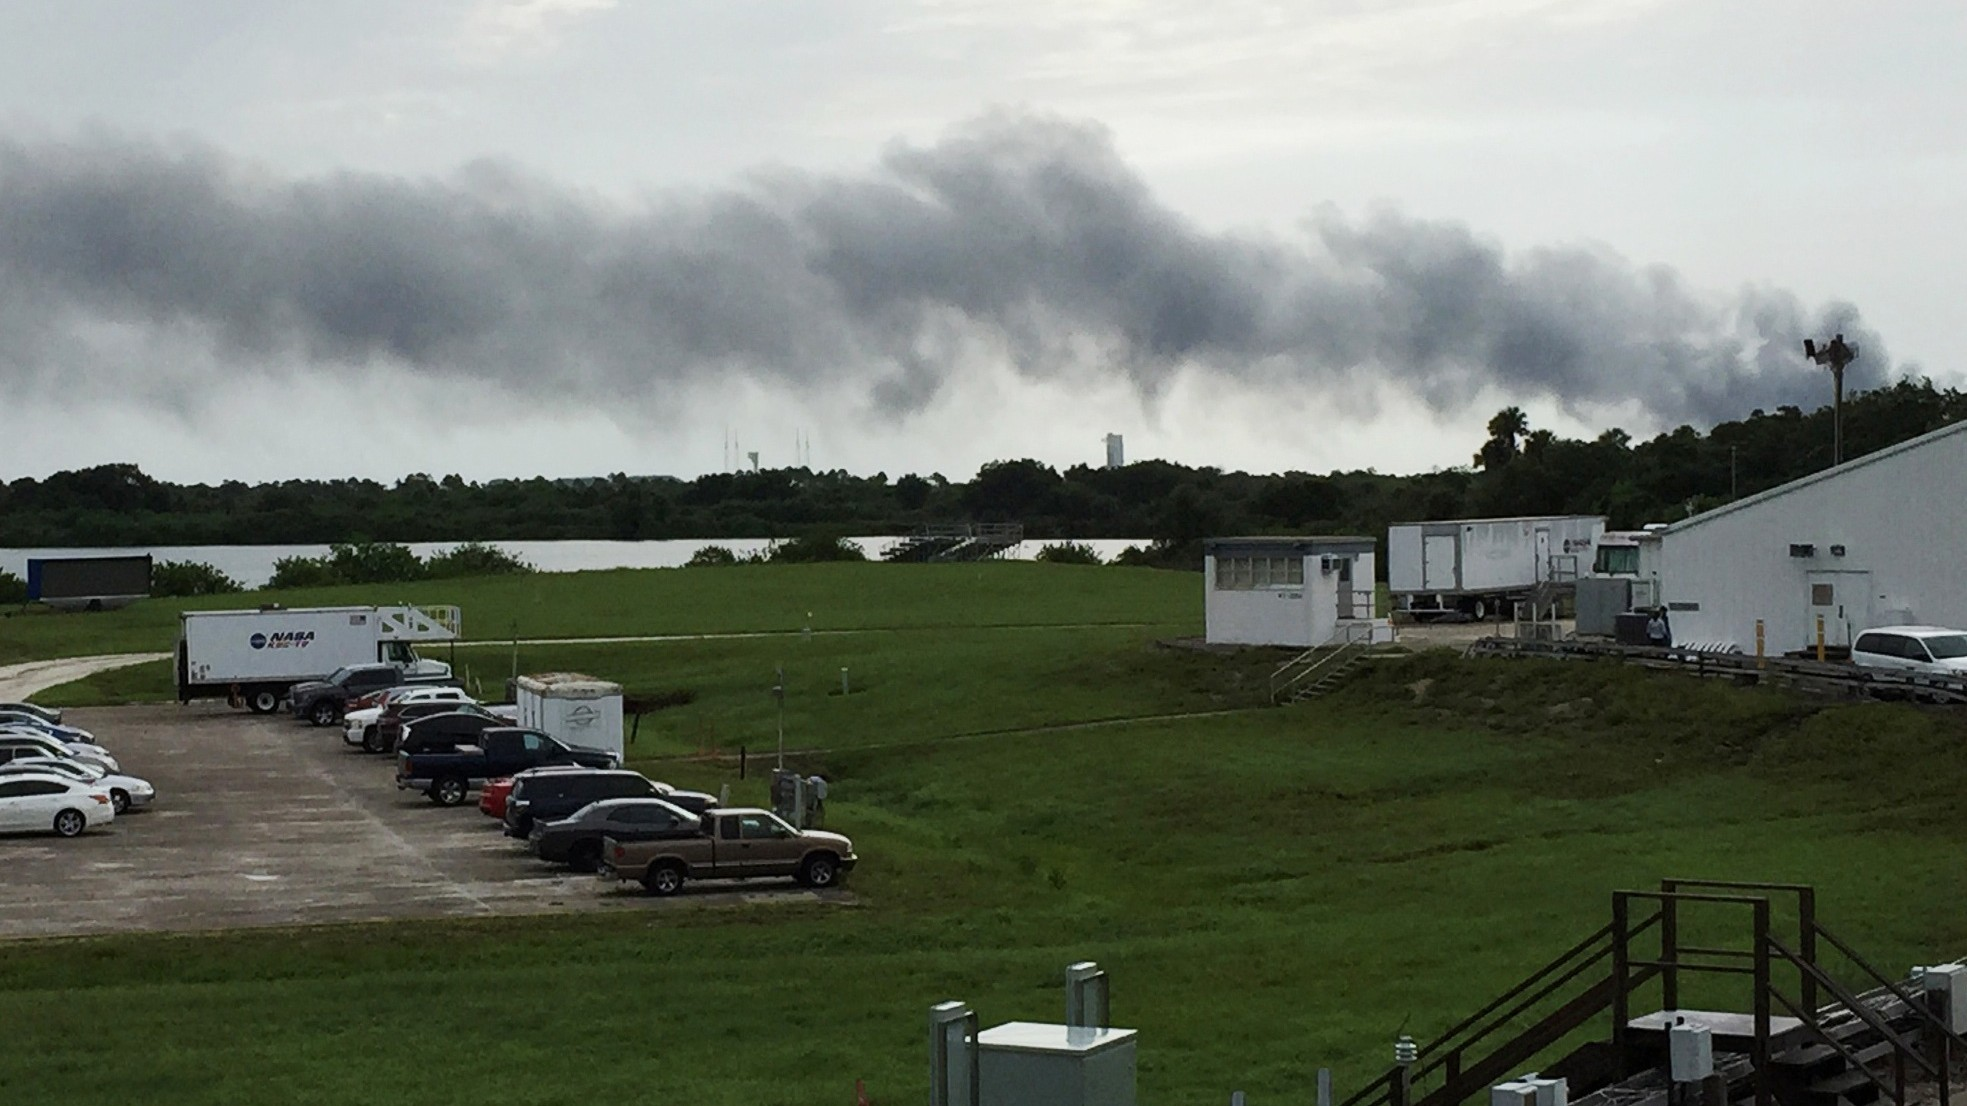 SpaceX just blew up another rocket during a routine test